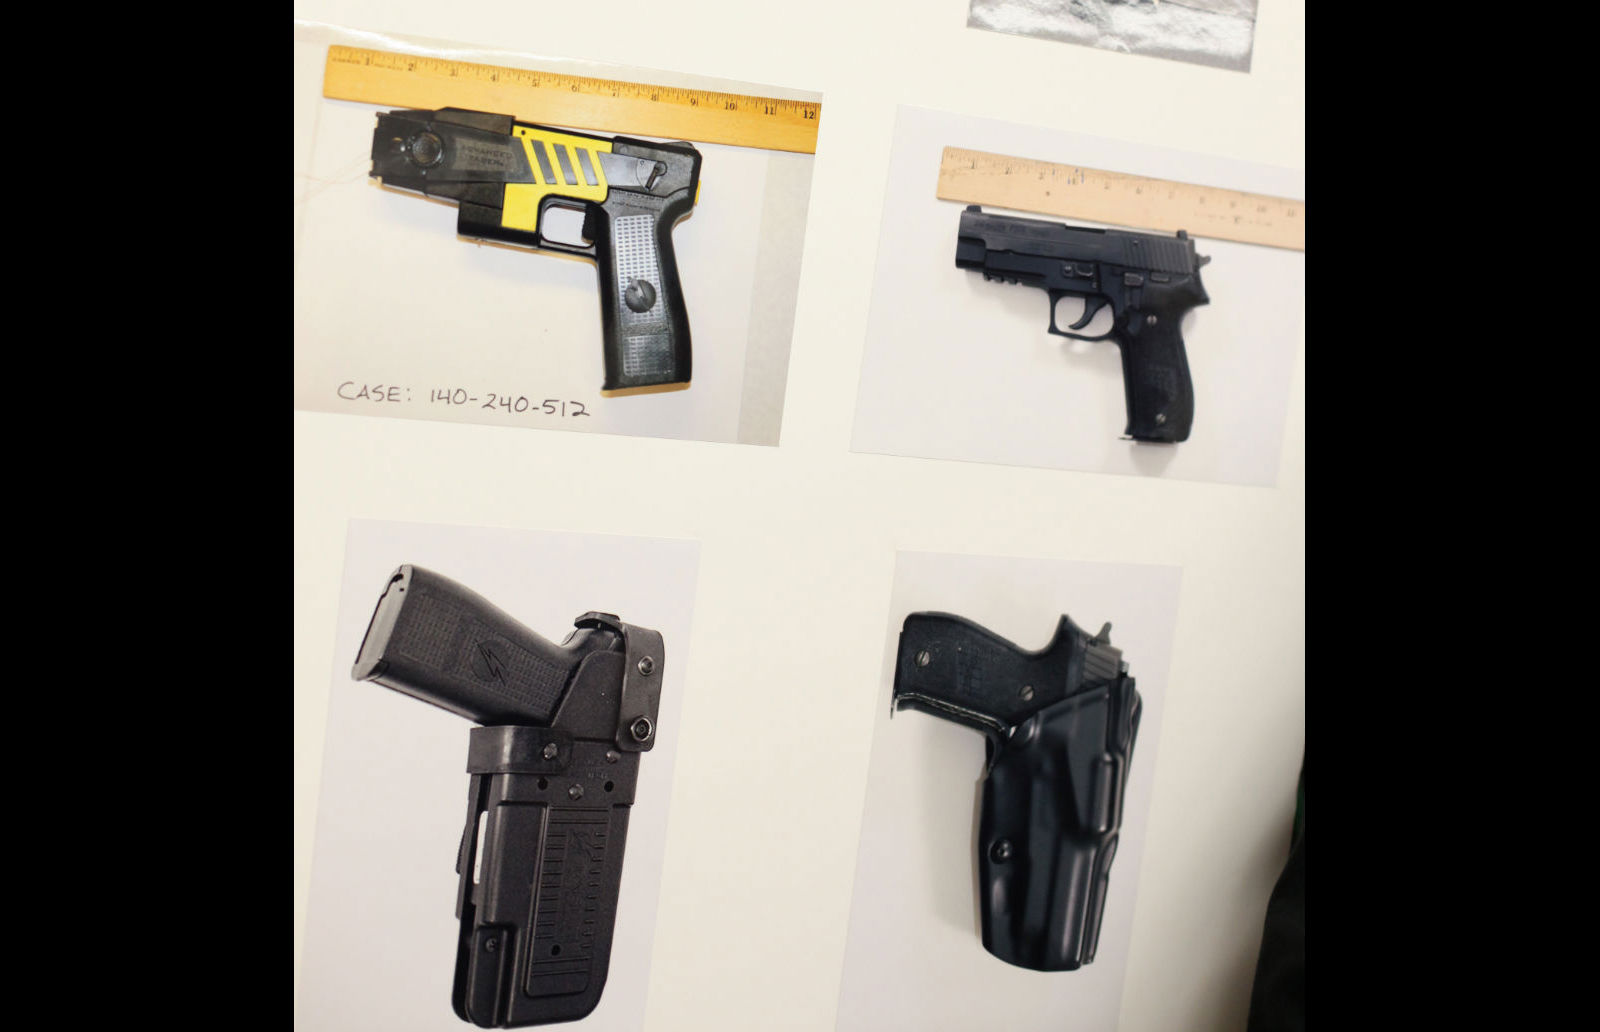 Column: Tasers, to arm or not to arm